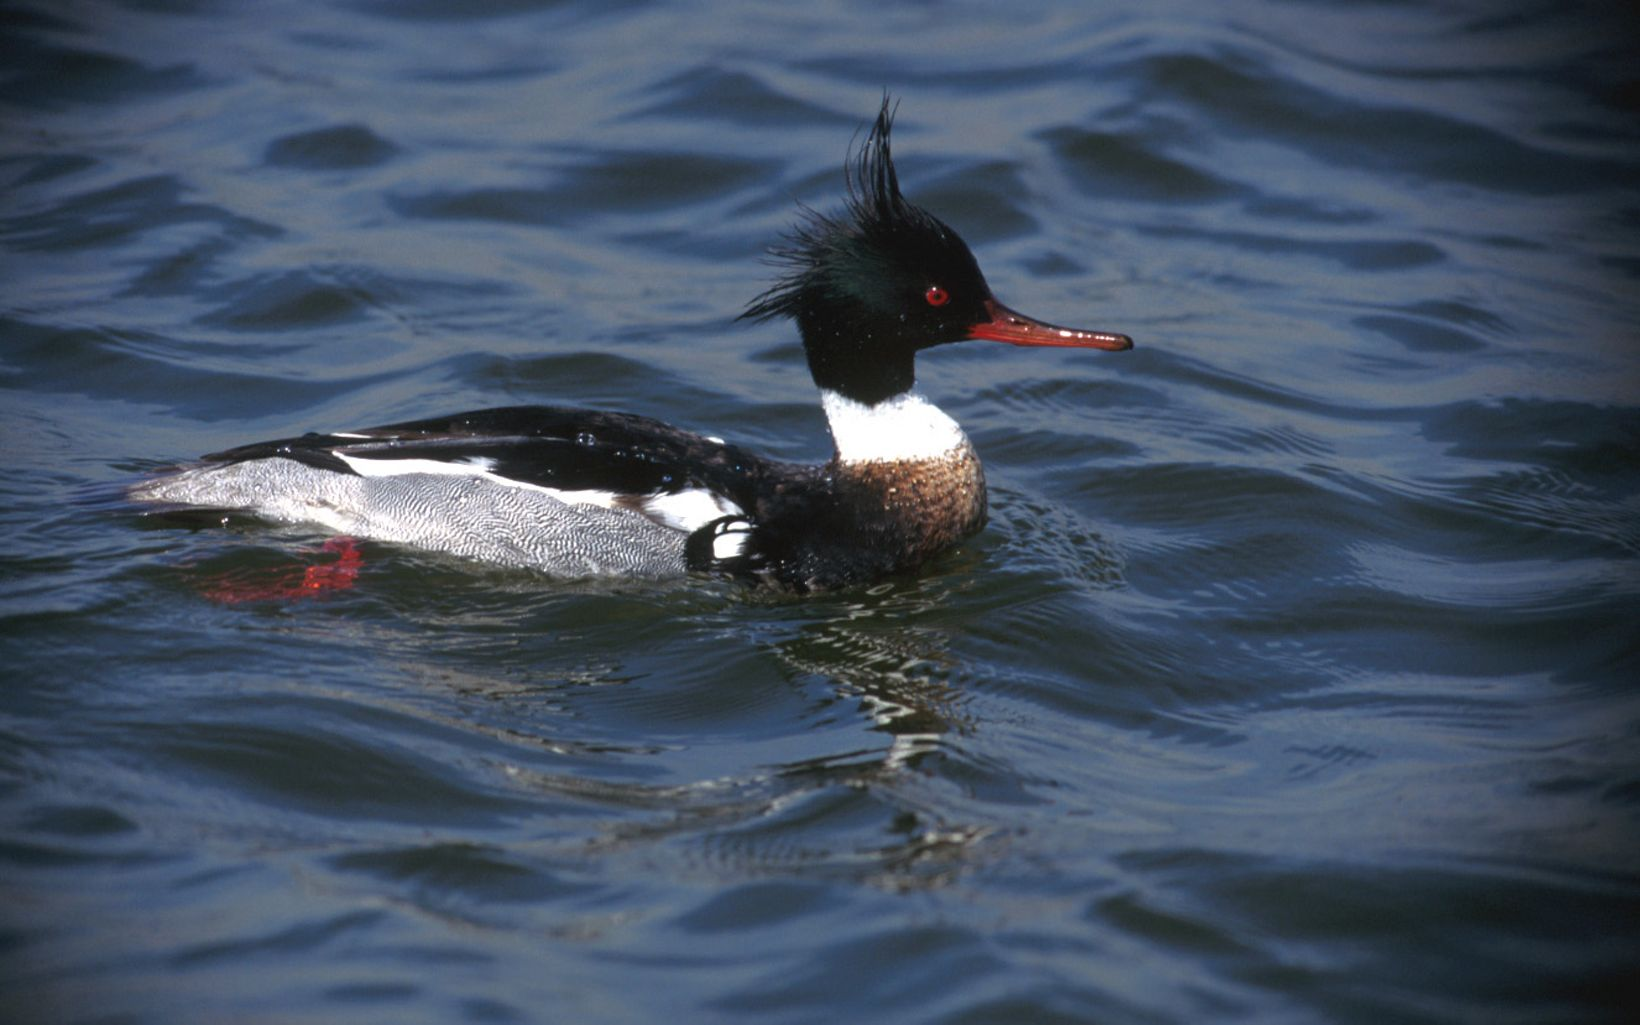 This slim, crested duck forages by diving and swimming underwater to hunt small fish.